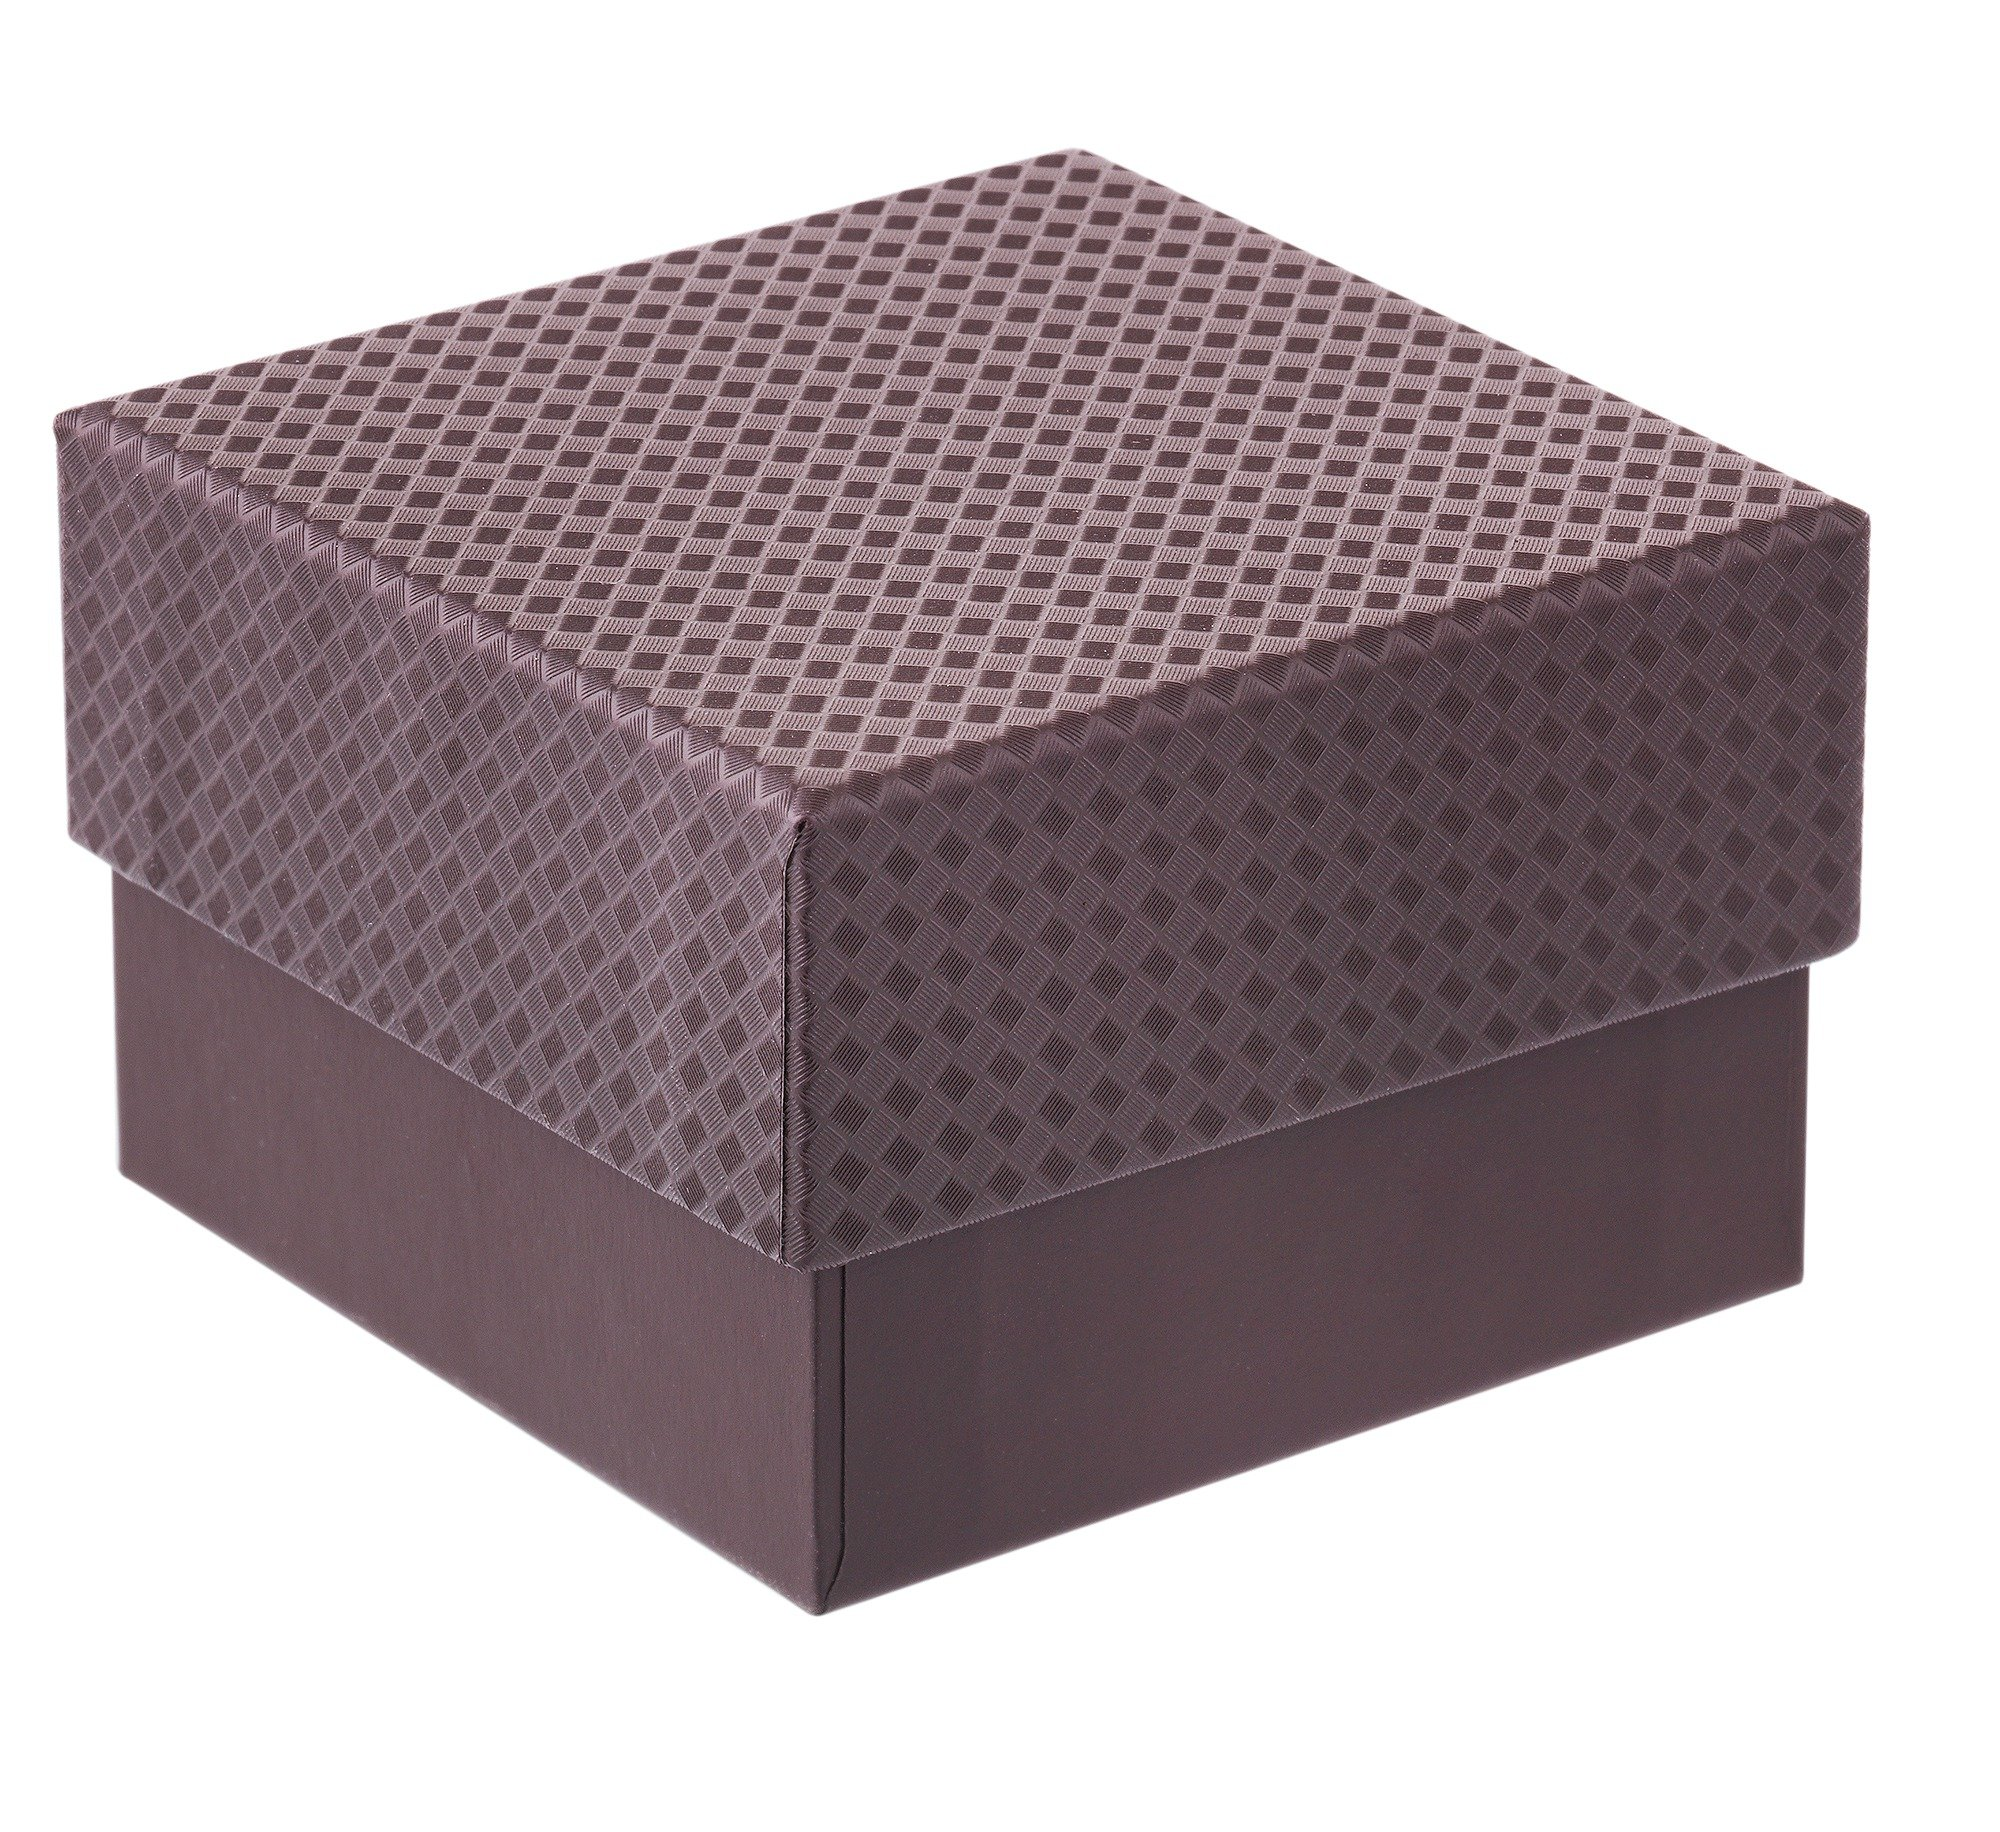 Chocolate Brown Small Gift Box with Internal Black Fitment